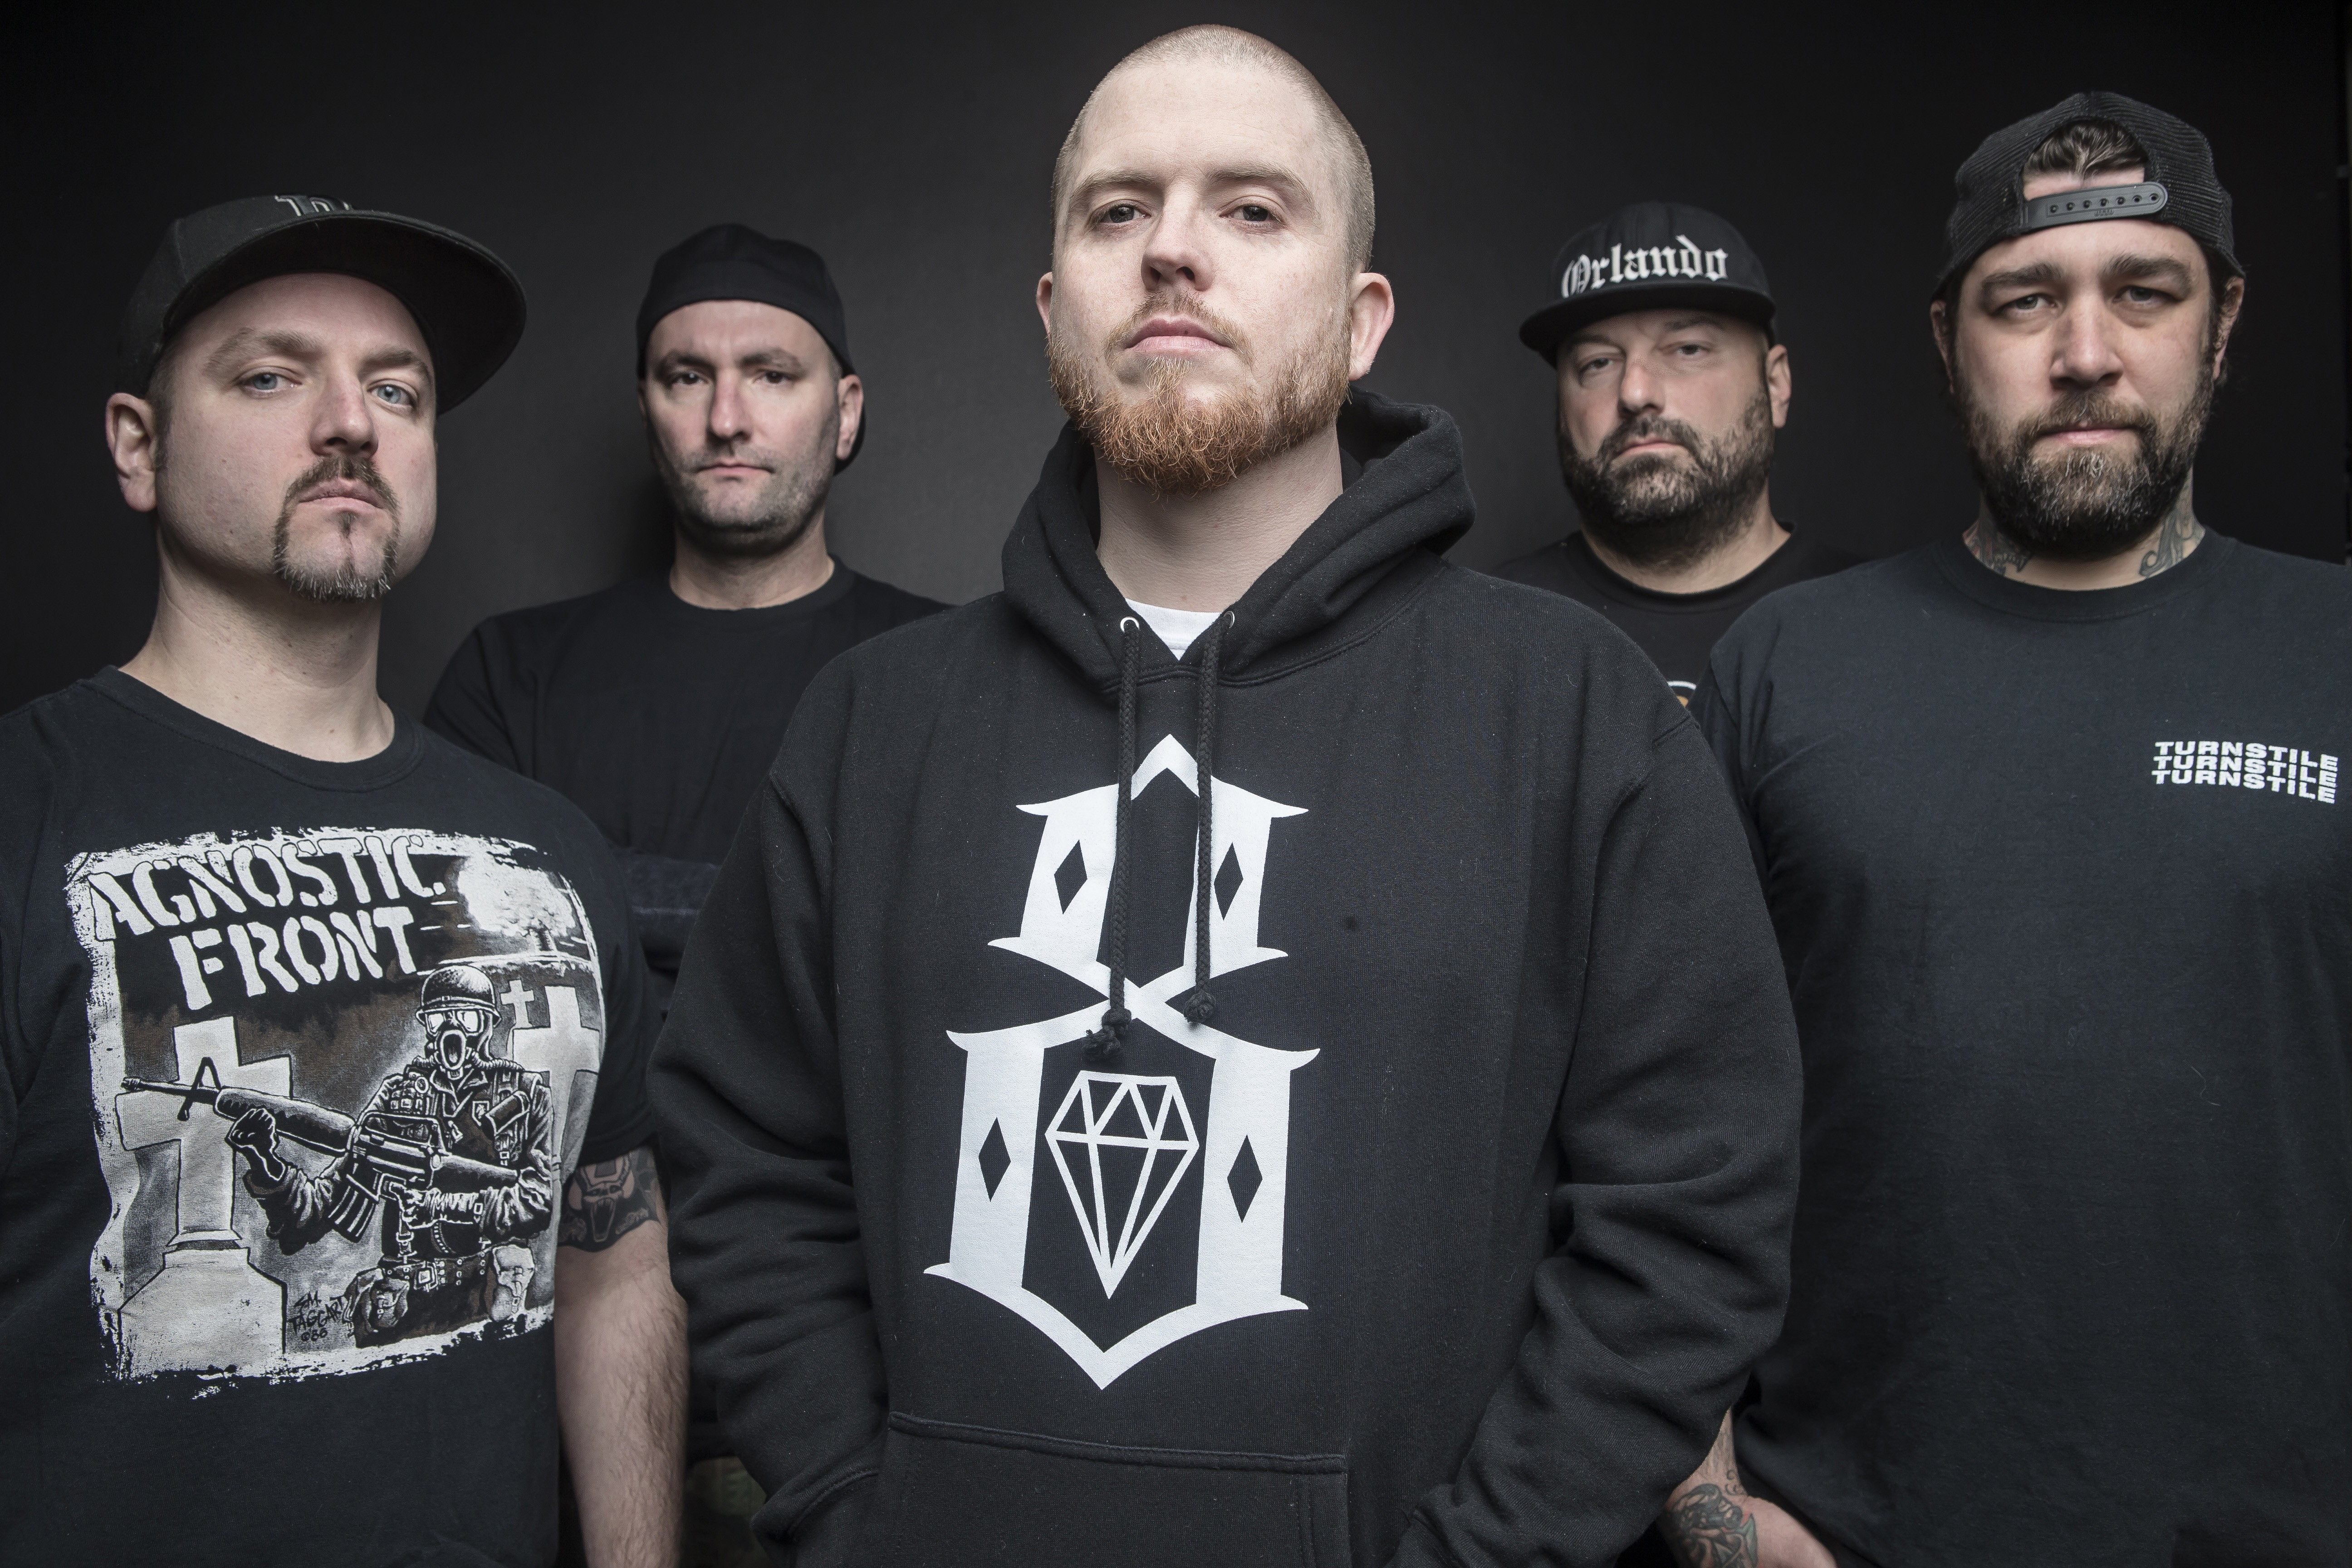 Stacked Lineup Headed By Hatebreed Taking Over Vibes Event Center